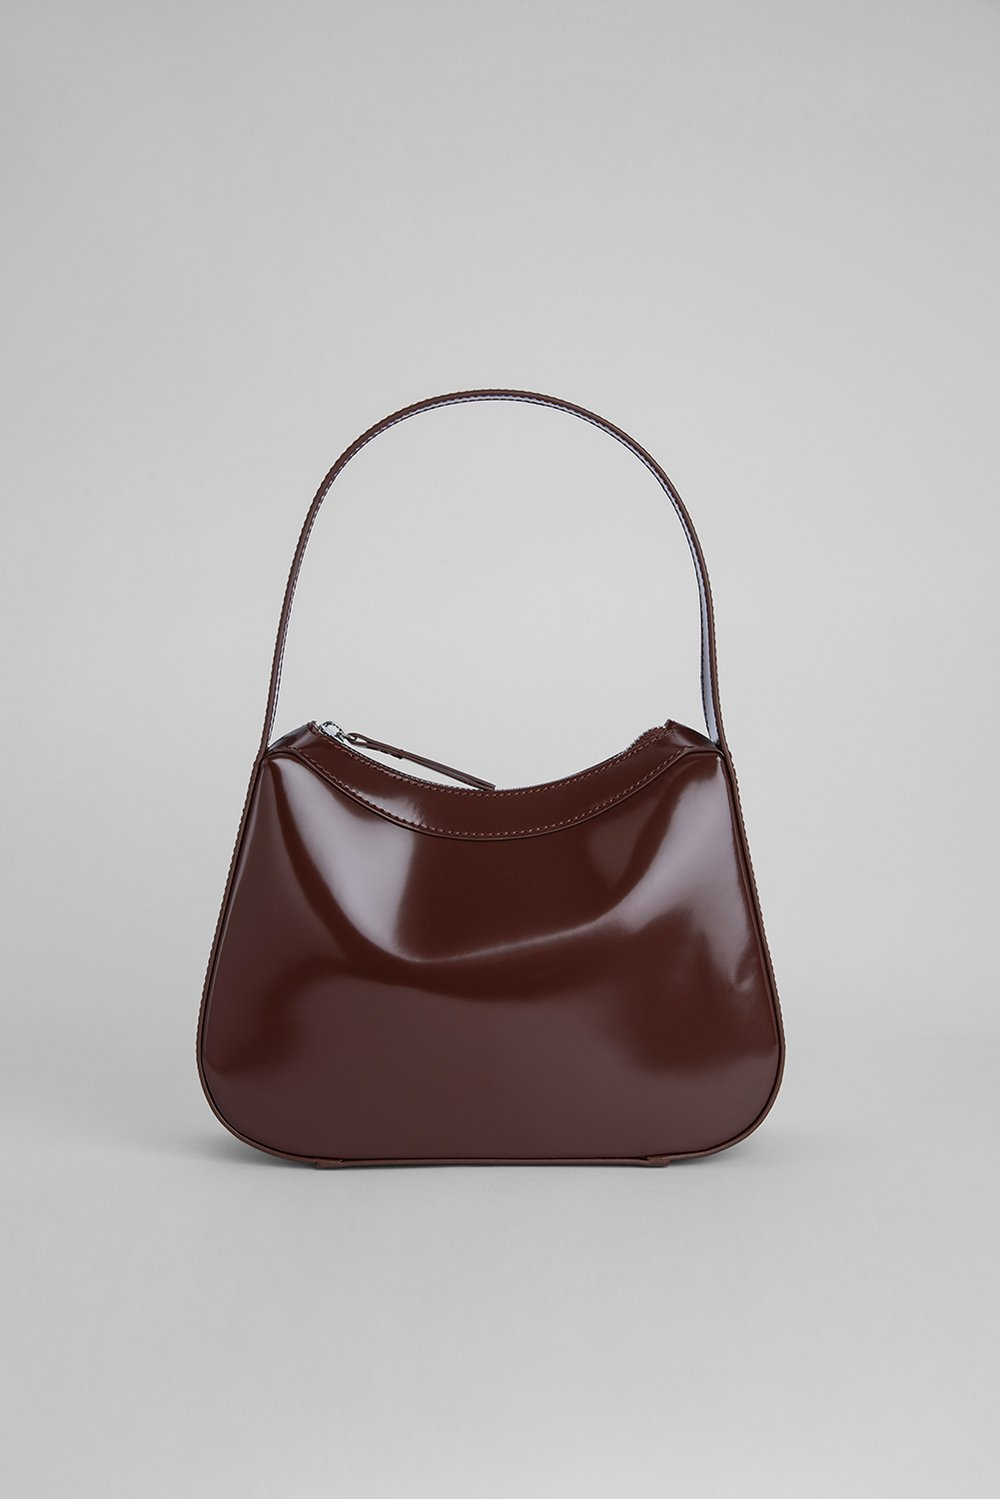 KIKI DARK BROWN SEMI PATENT LEATHER by BY FAR, available on byfar.com Kendall Jenner Bags Exact Product